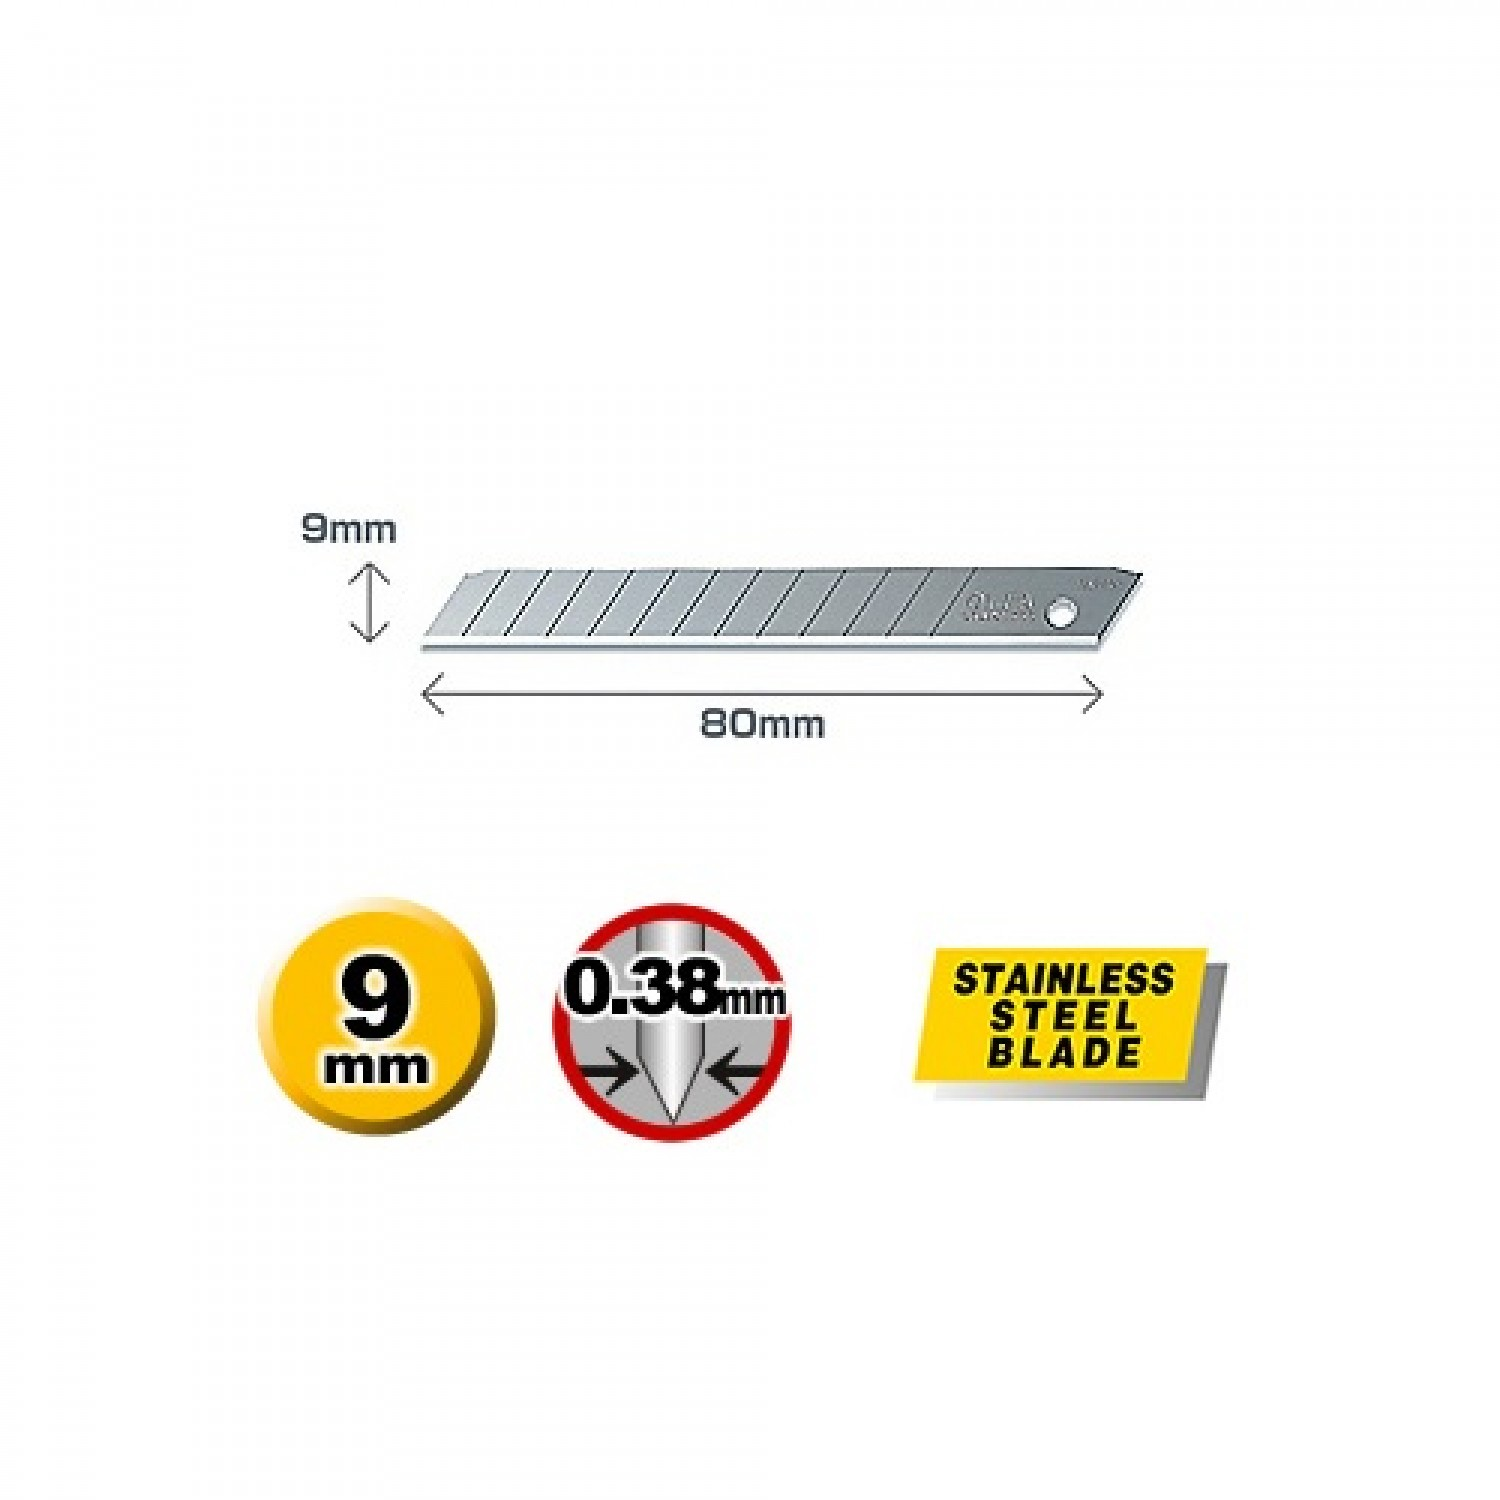 Olfa AB-10S Stainless Steel Blade Dimentions